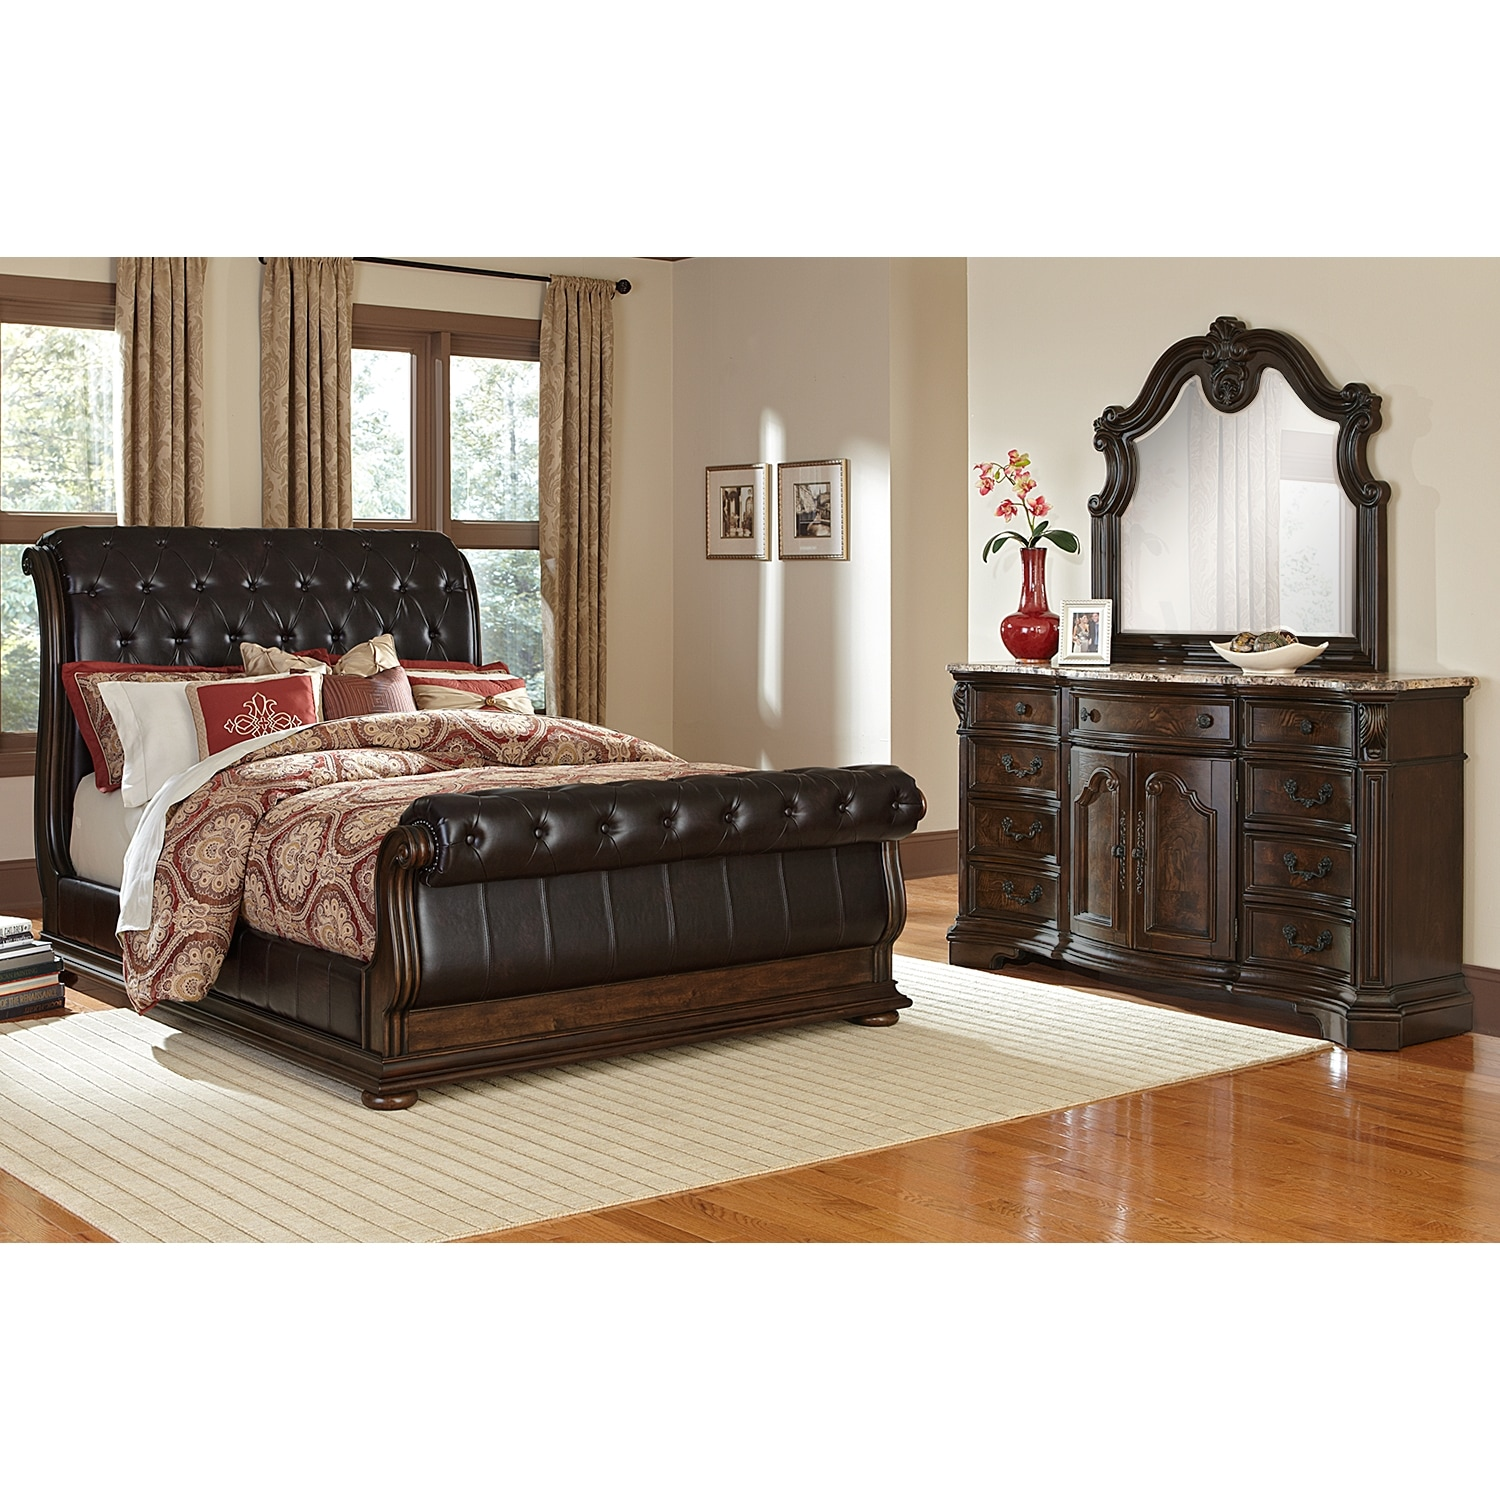 shop 5 piece bedroom sets value city furniture 17688 | 276878 fit inside 320 320 composite to center center 320 320 background color white